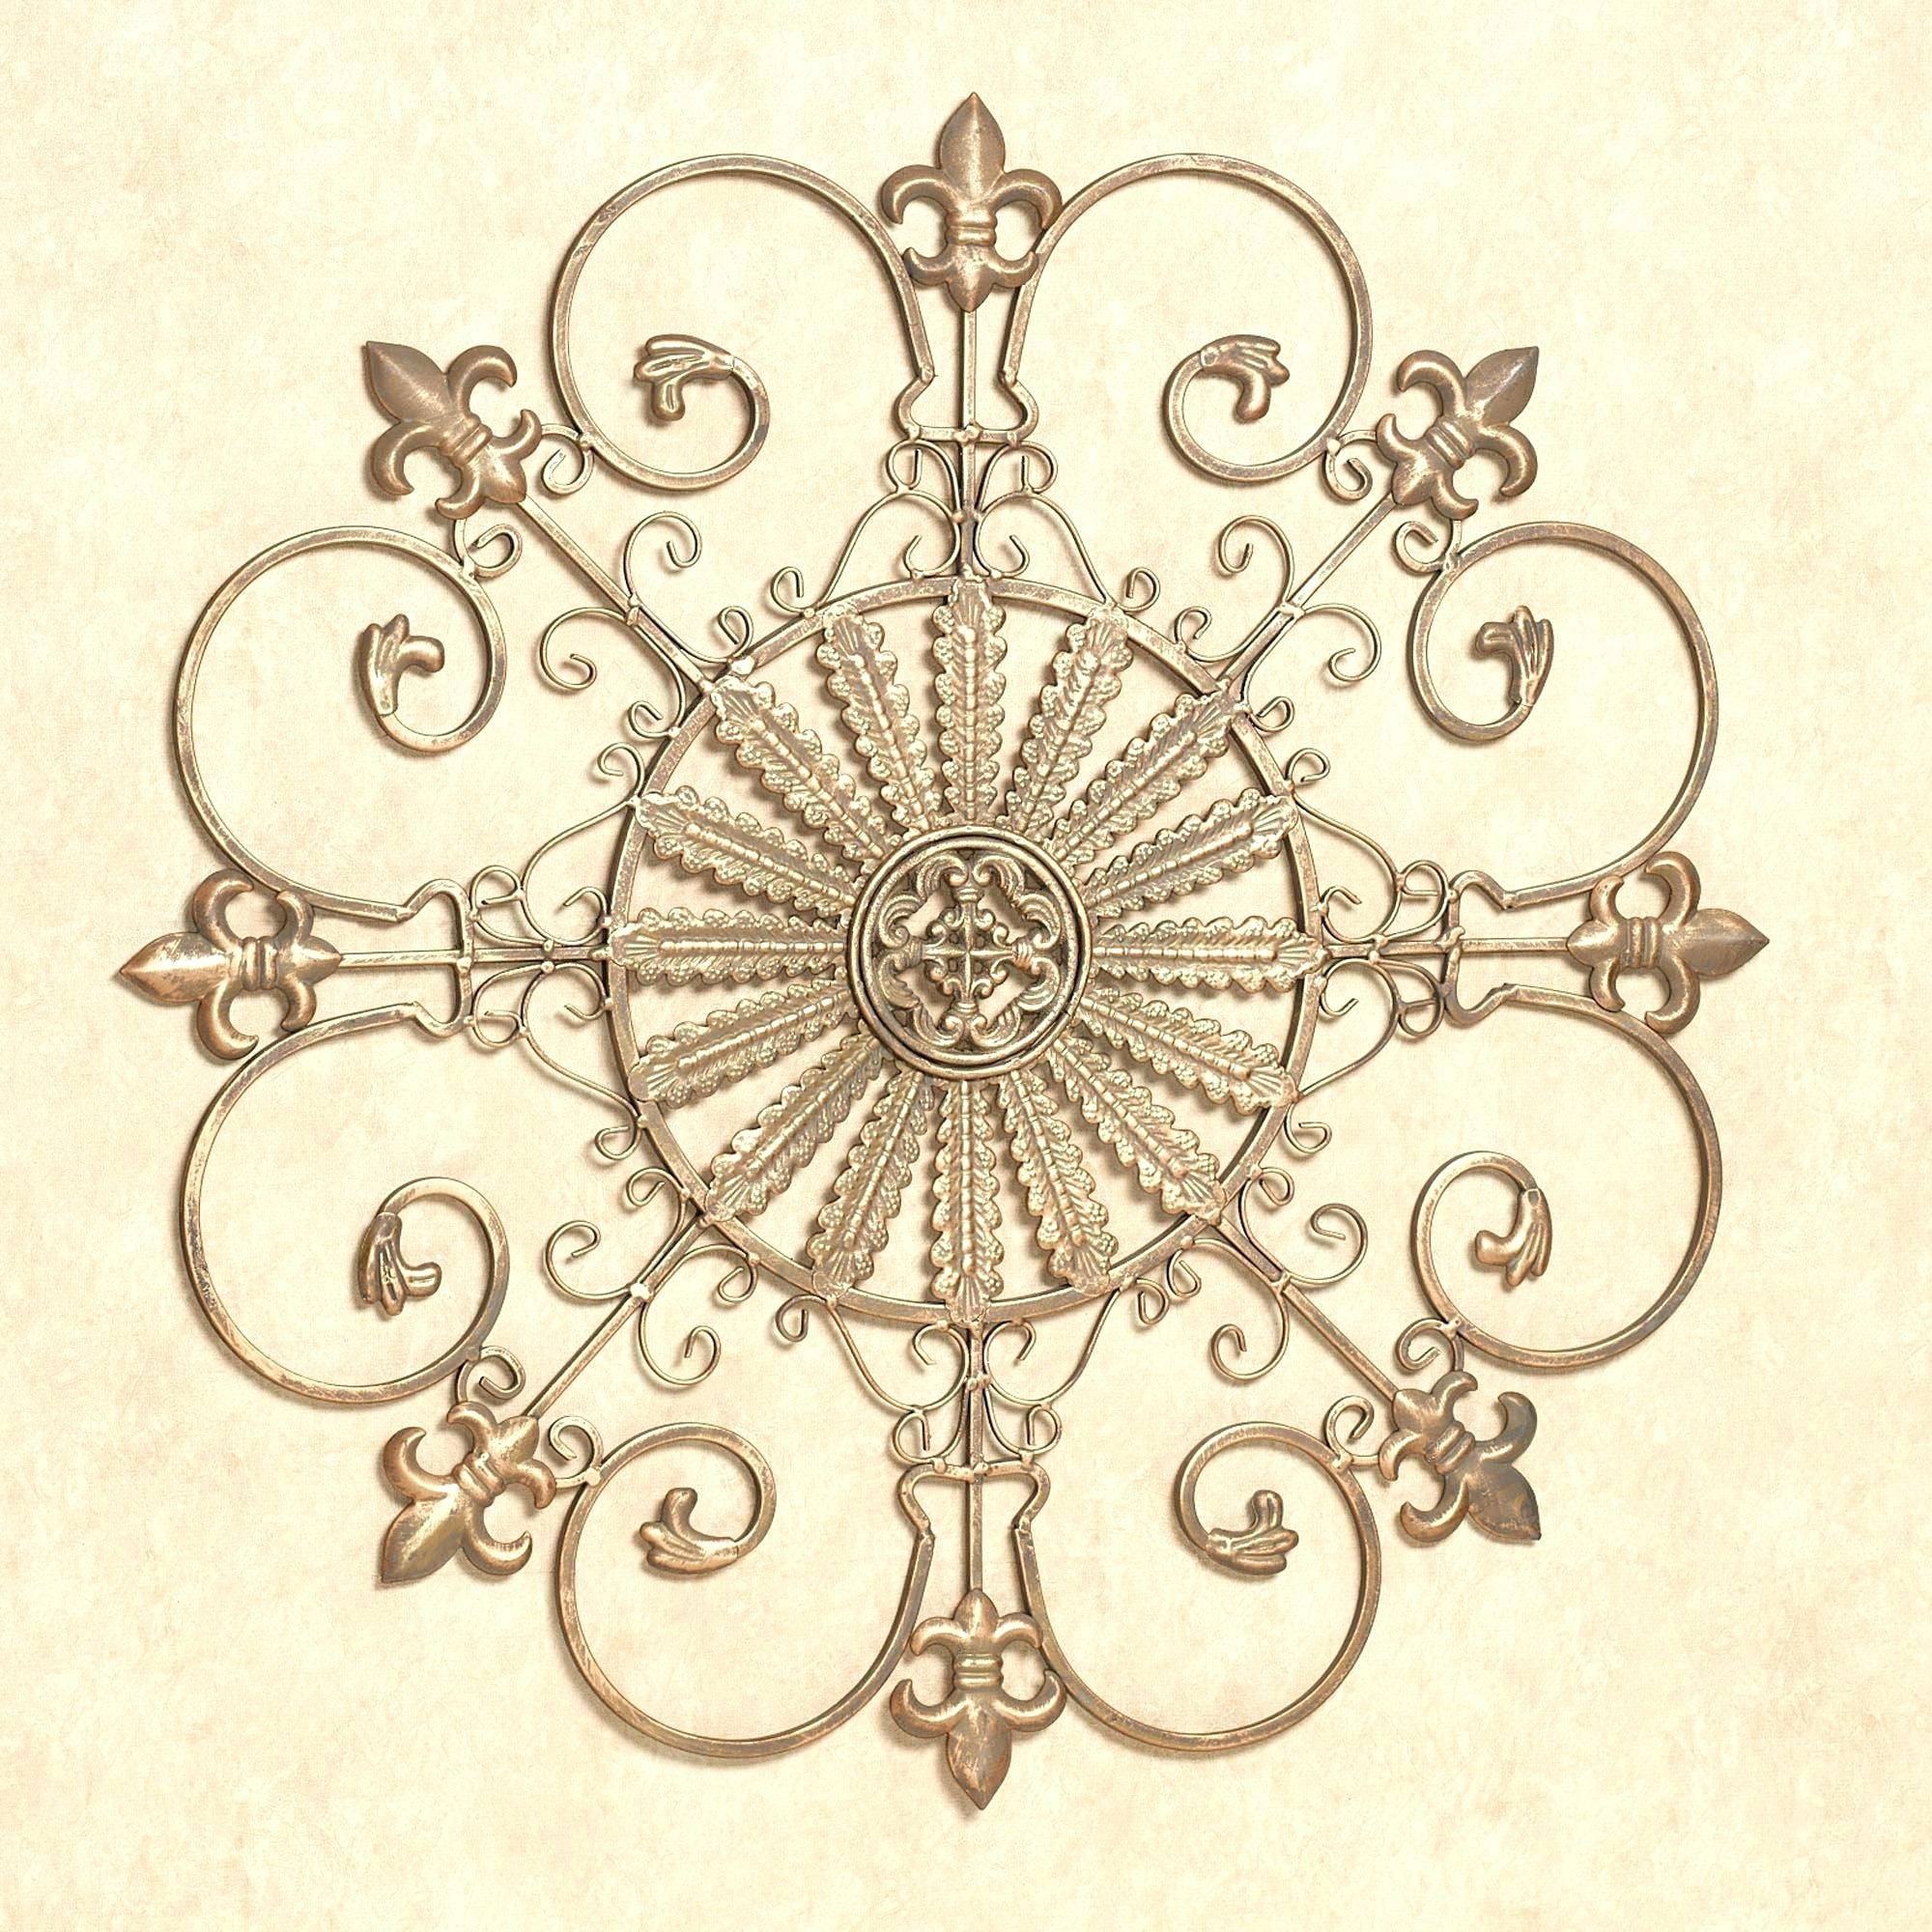 Wall Arts ~ Scroll Iron Wall Art Round Metal Scroll Wall Art Round In Current Large Round Metal Wall Art (View 8 of 20)